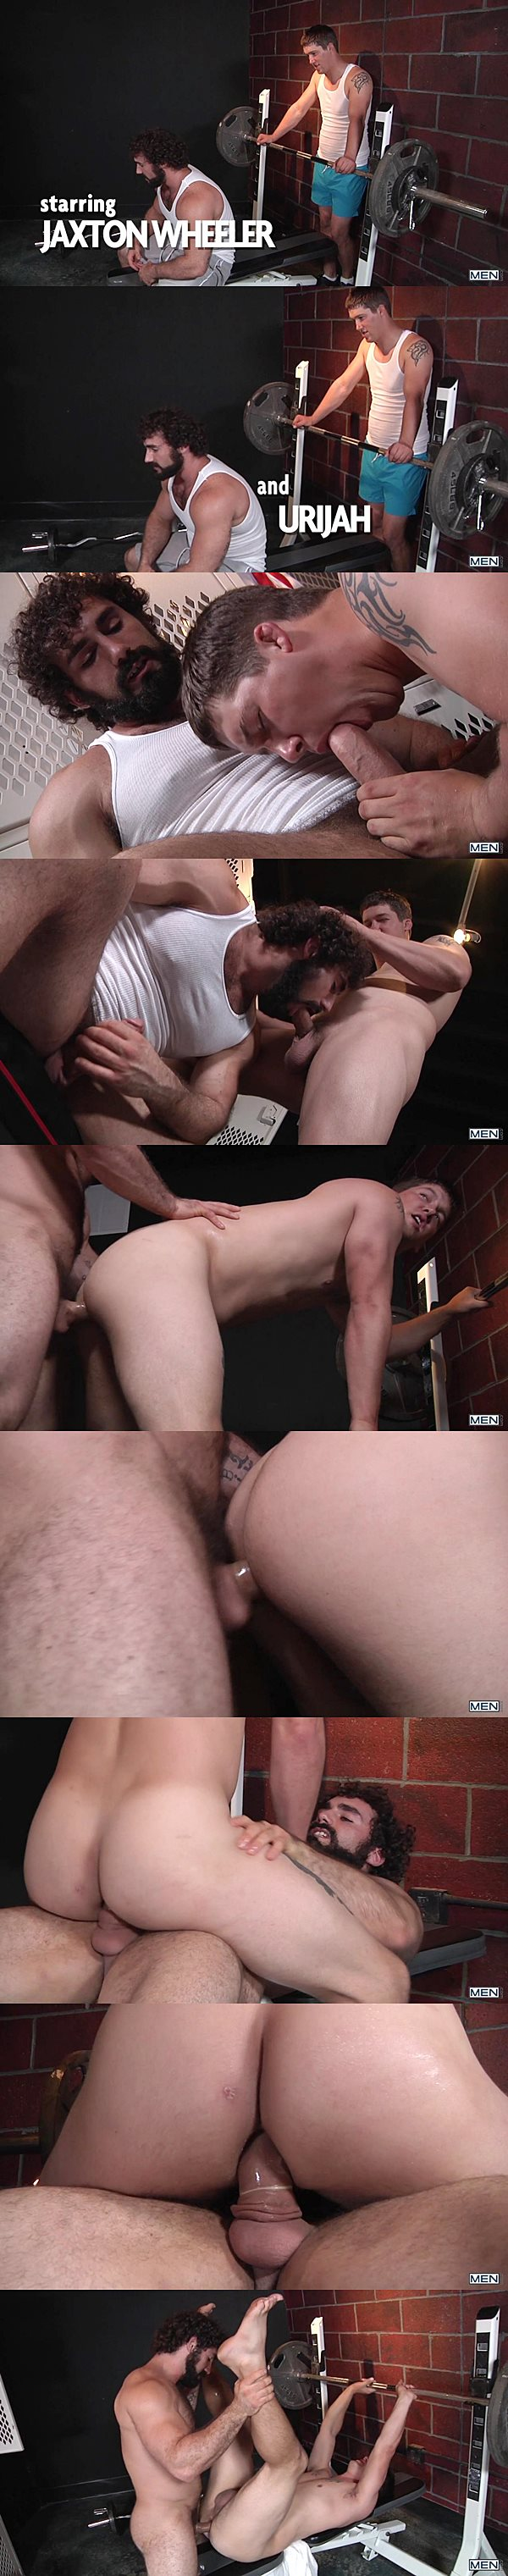 A Sneak Peek of Jaxton Wheeler fucking Urijah at Str8togay